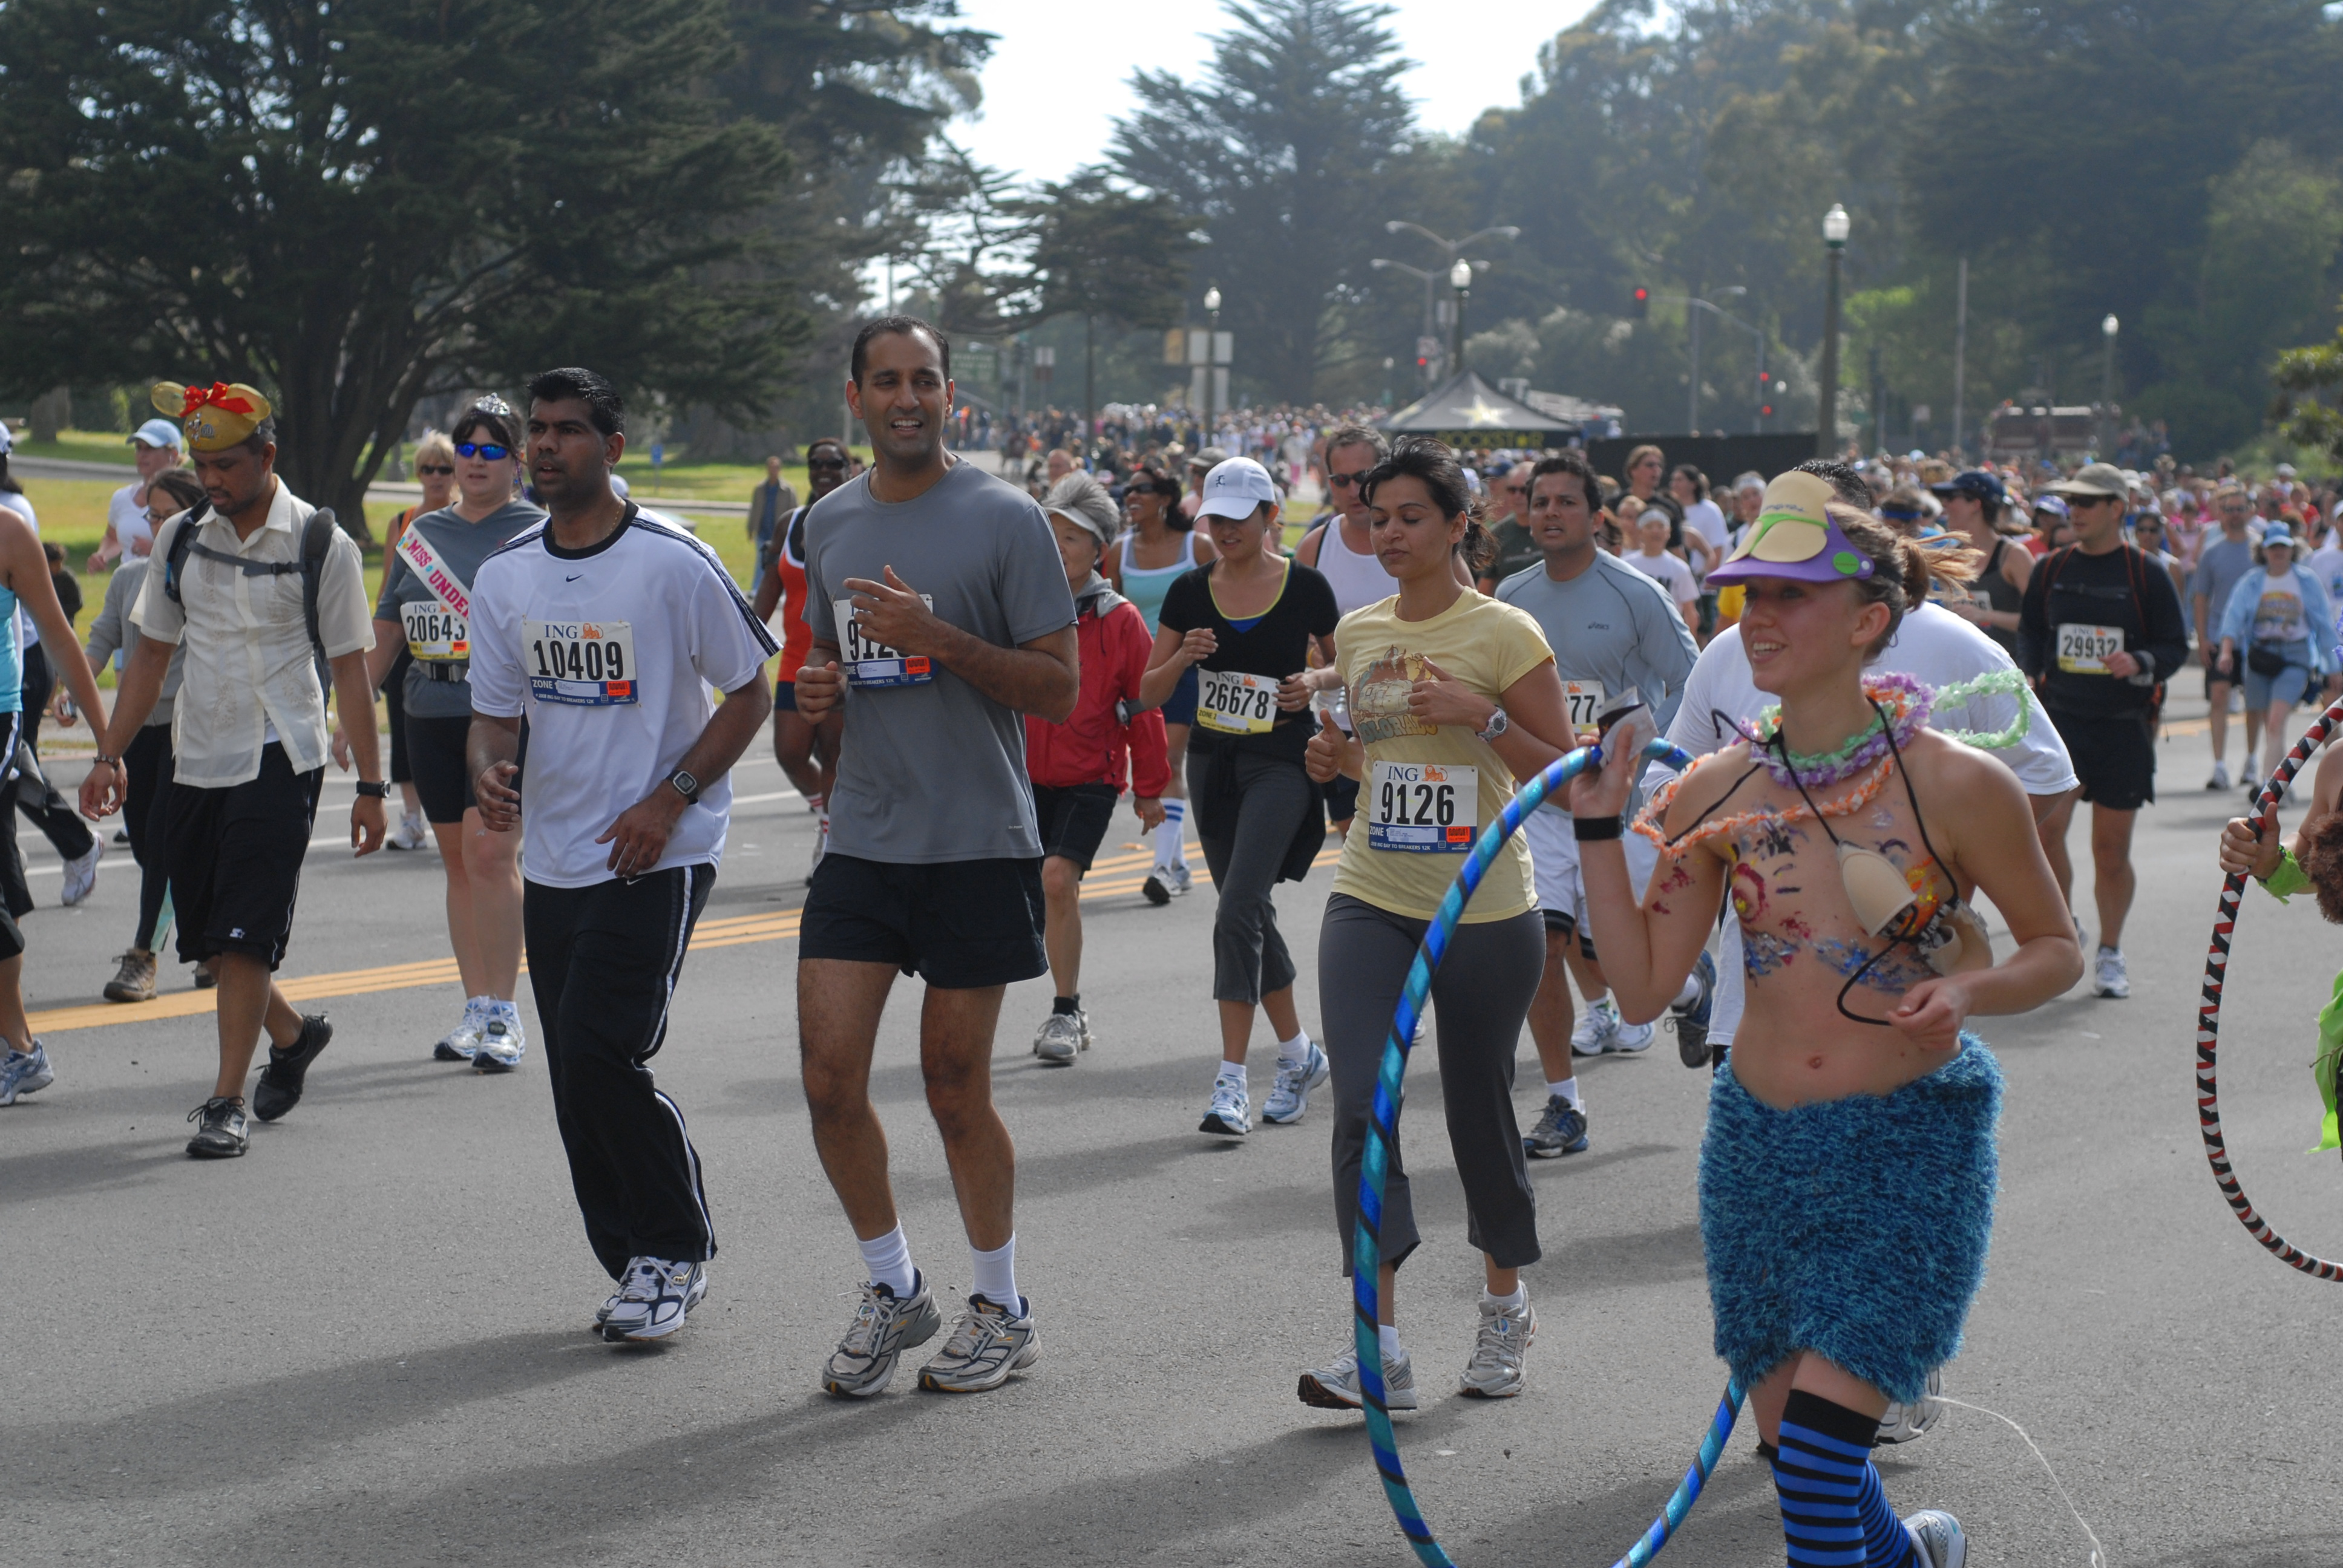 With you Bay to breakers naked women running apologise, but